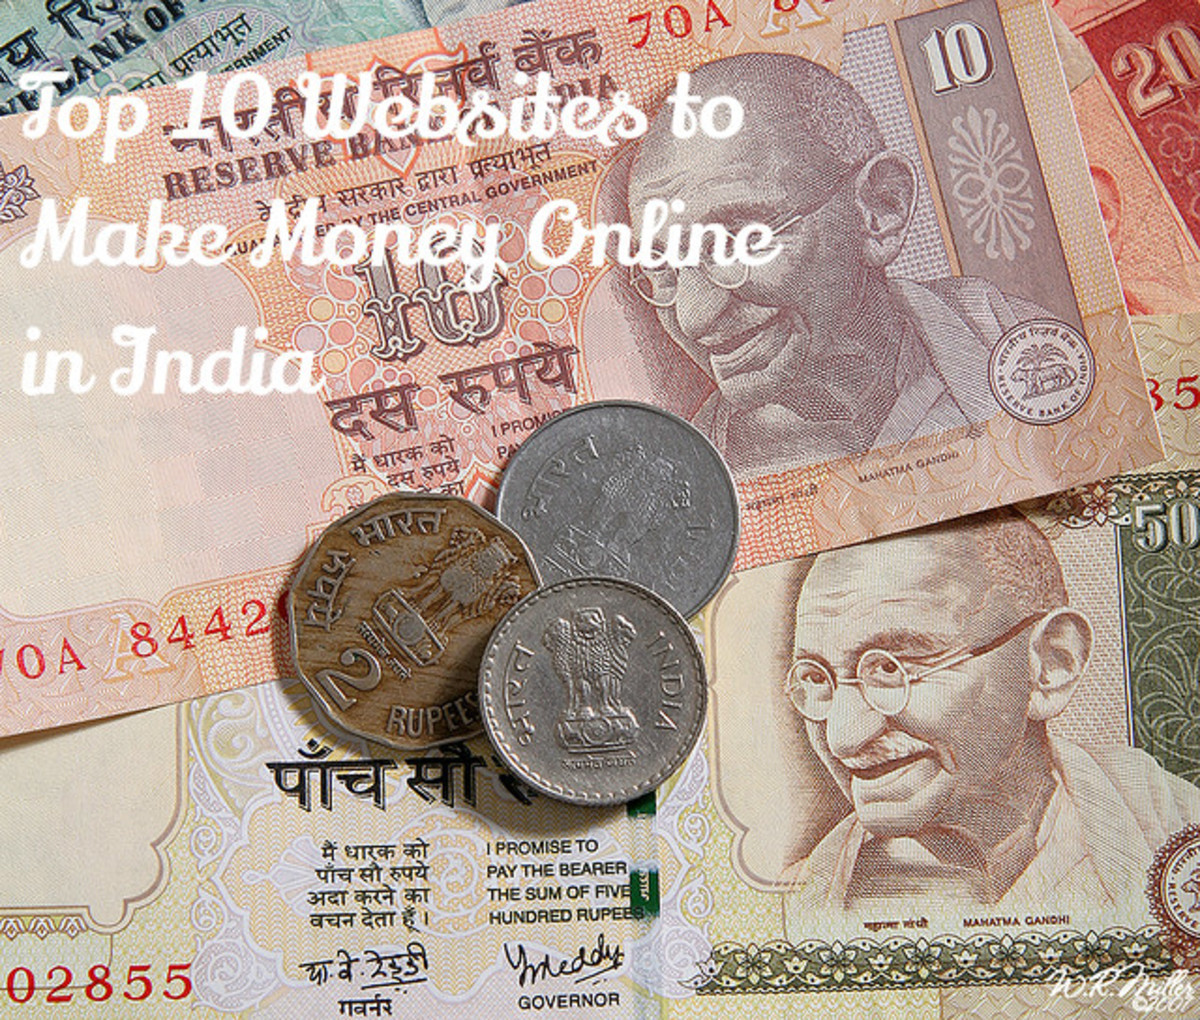 make-money-online-in-india-top-10-websites-to-earn-for-indians